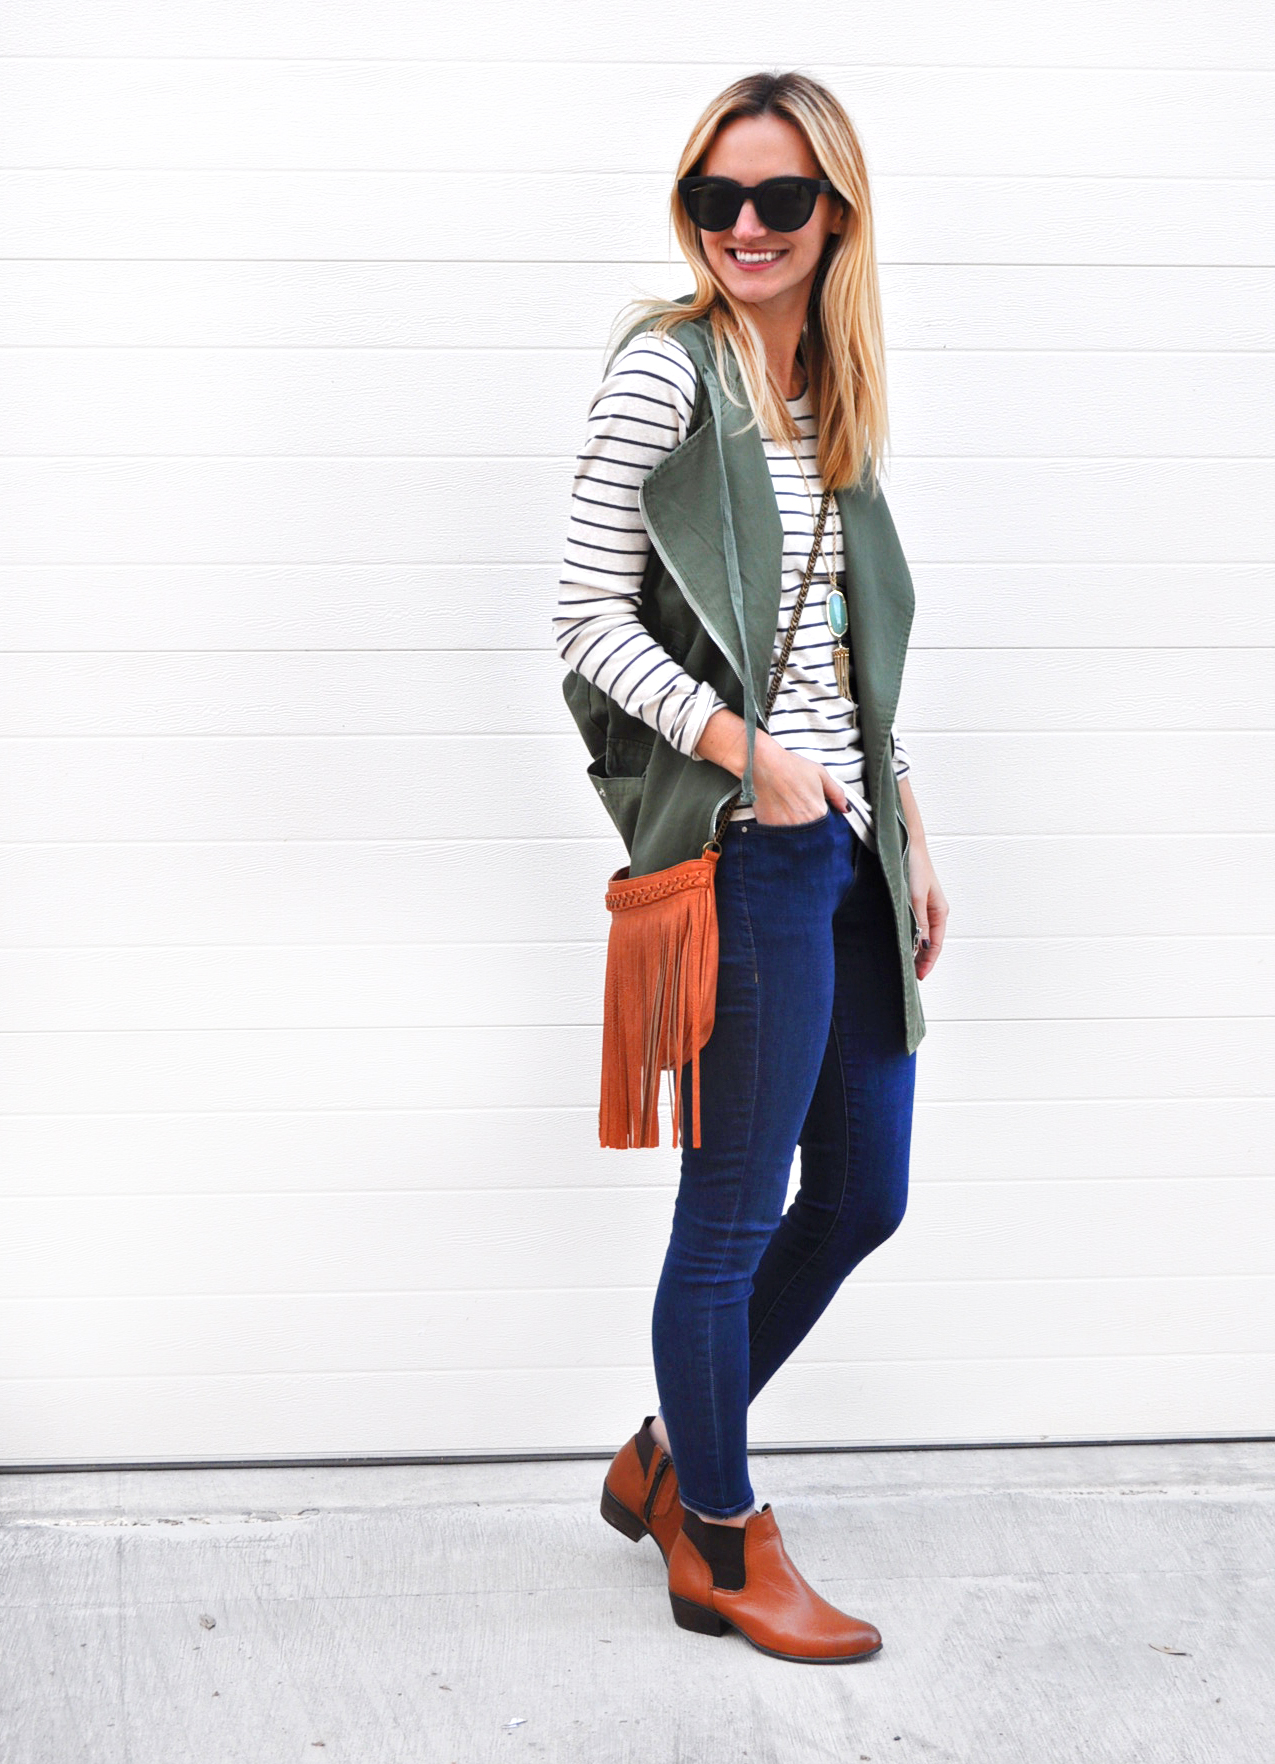 livvyland-blog-olivia-watson-army-green-utility-vest-fringe-handbag-brown-chelsea-boots-booties-austin-texas-fashion-blogger-4